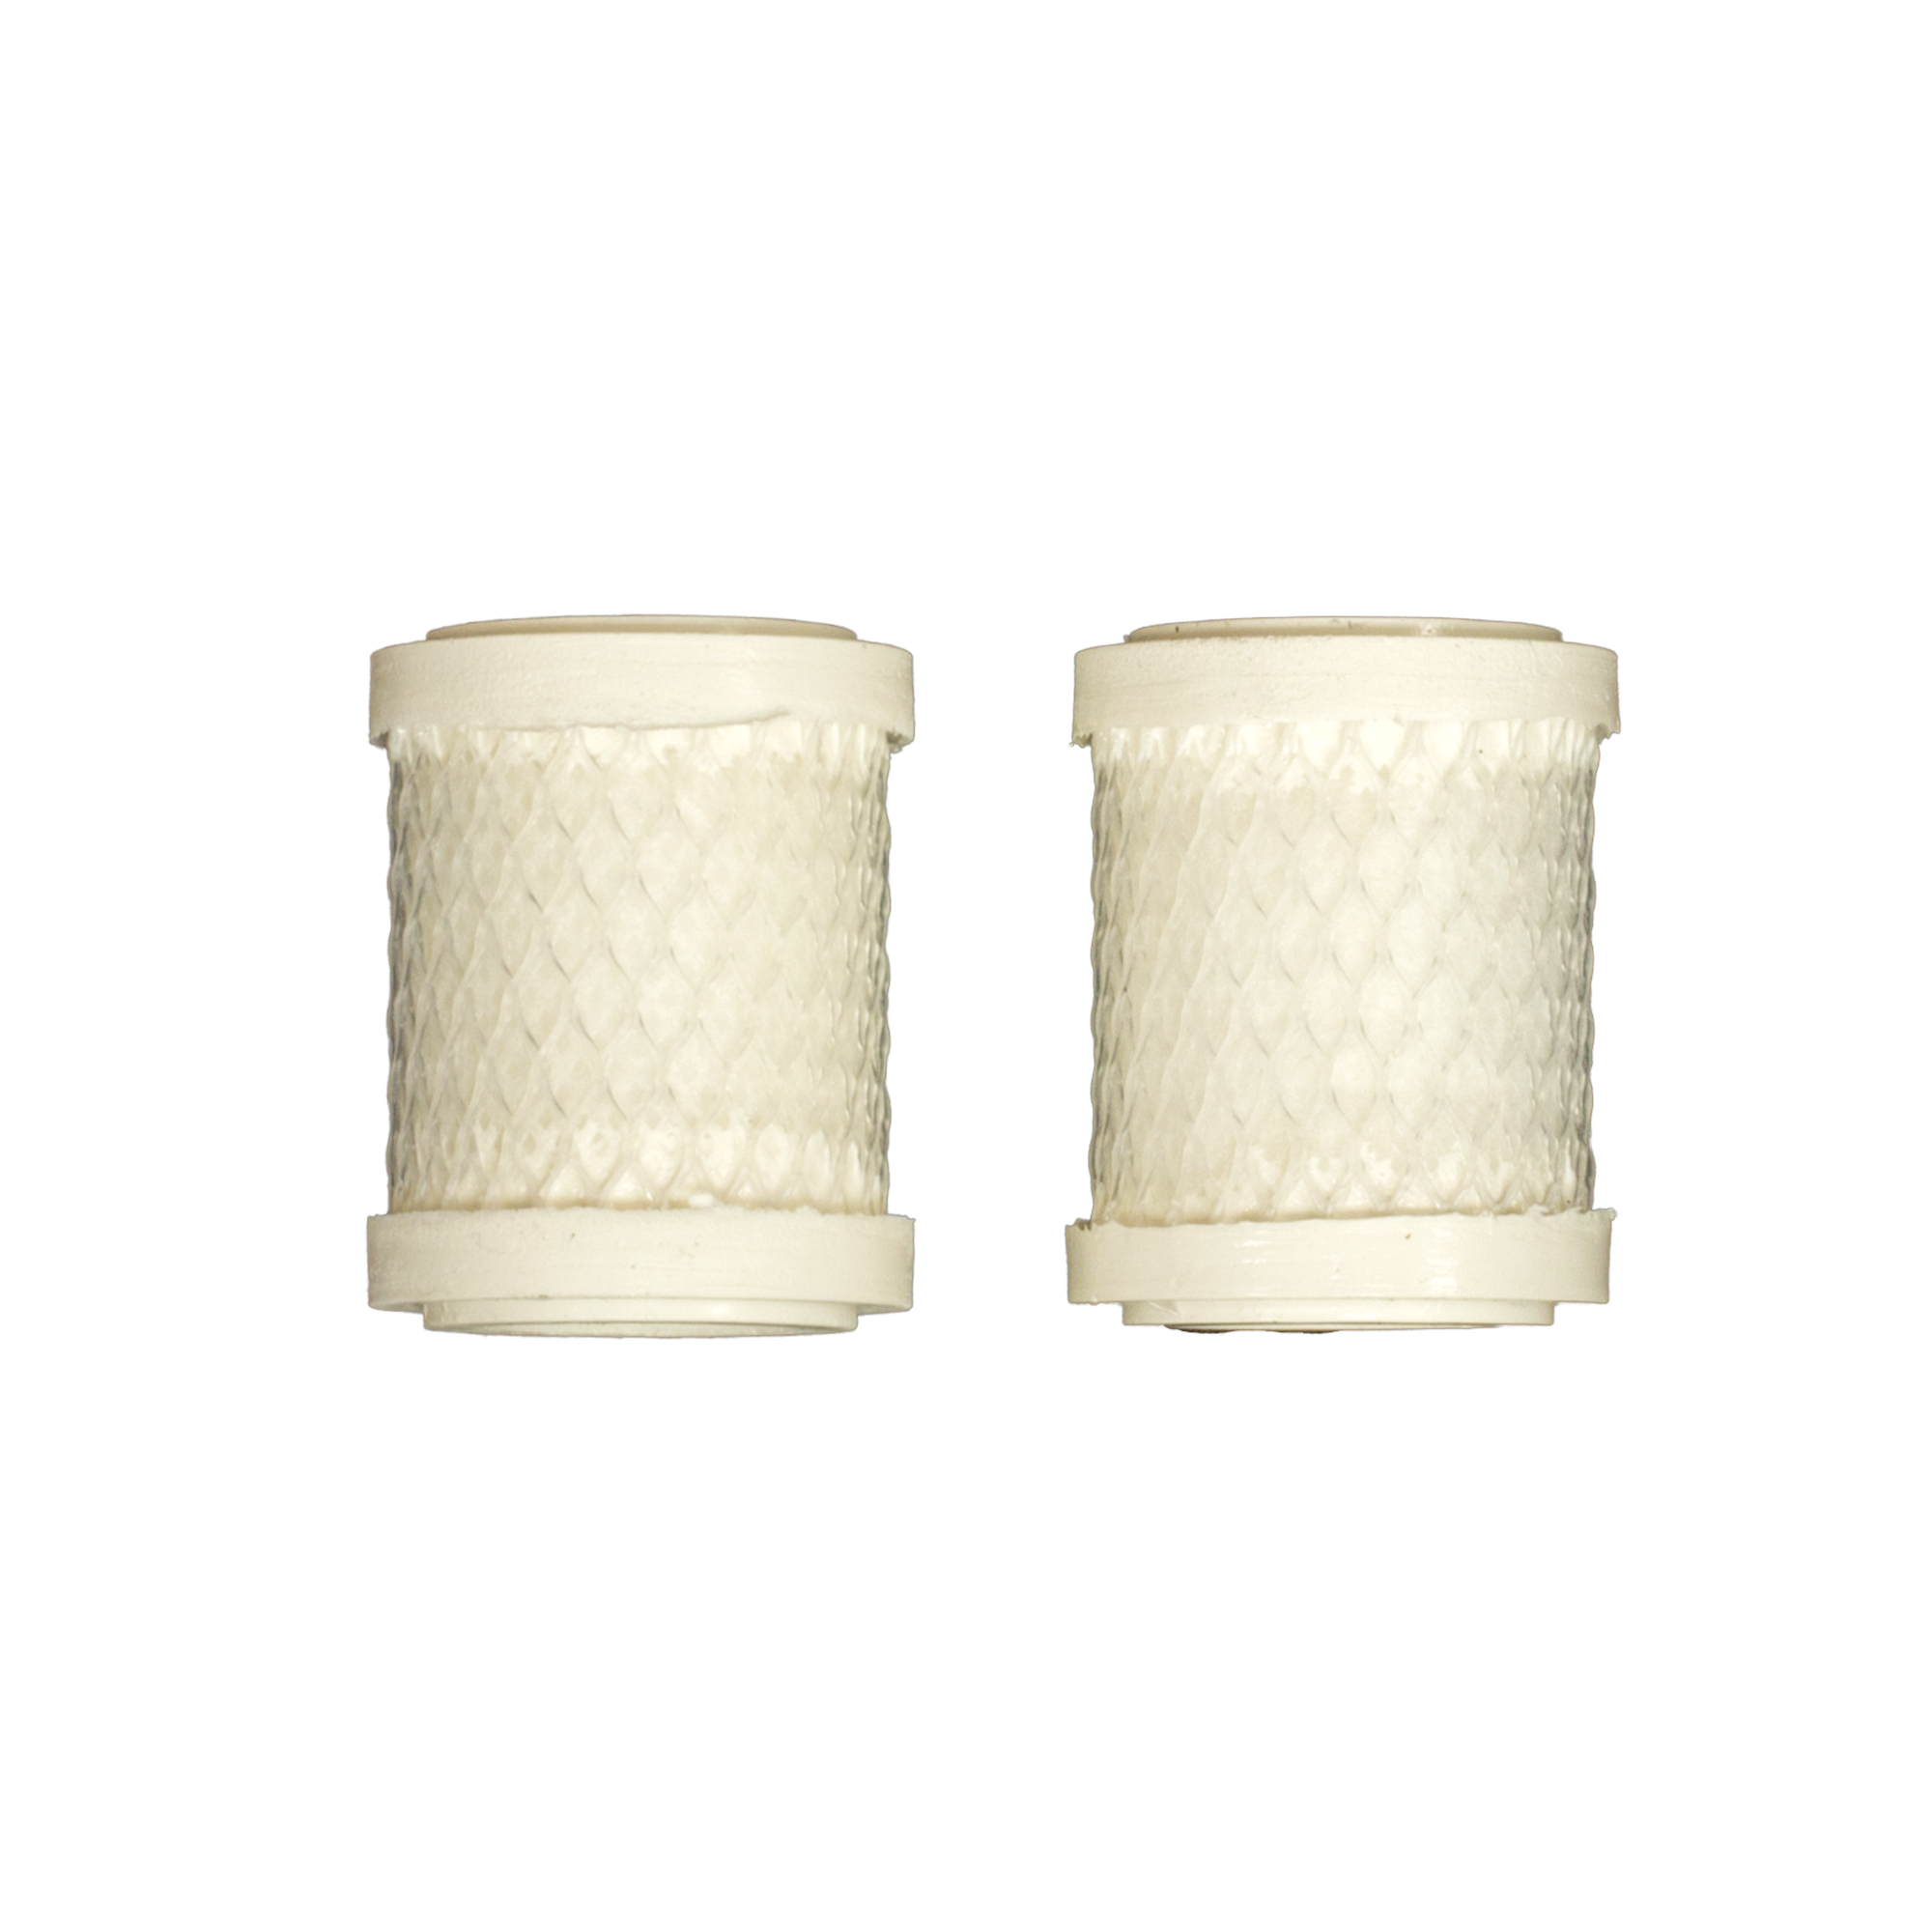 Model 900563 Replacement Filter Element for Model 9005 and 9027 Oil Removal Filters